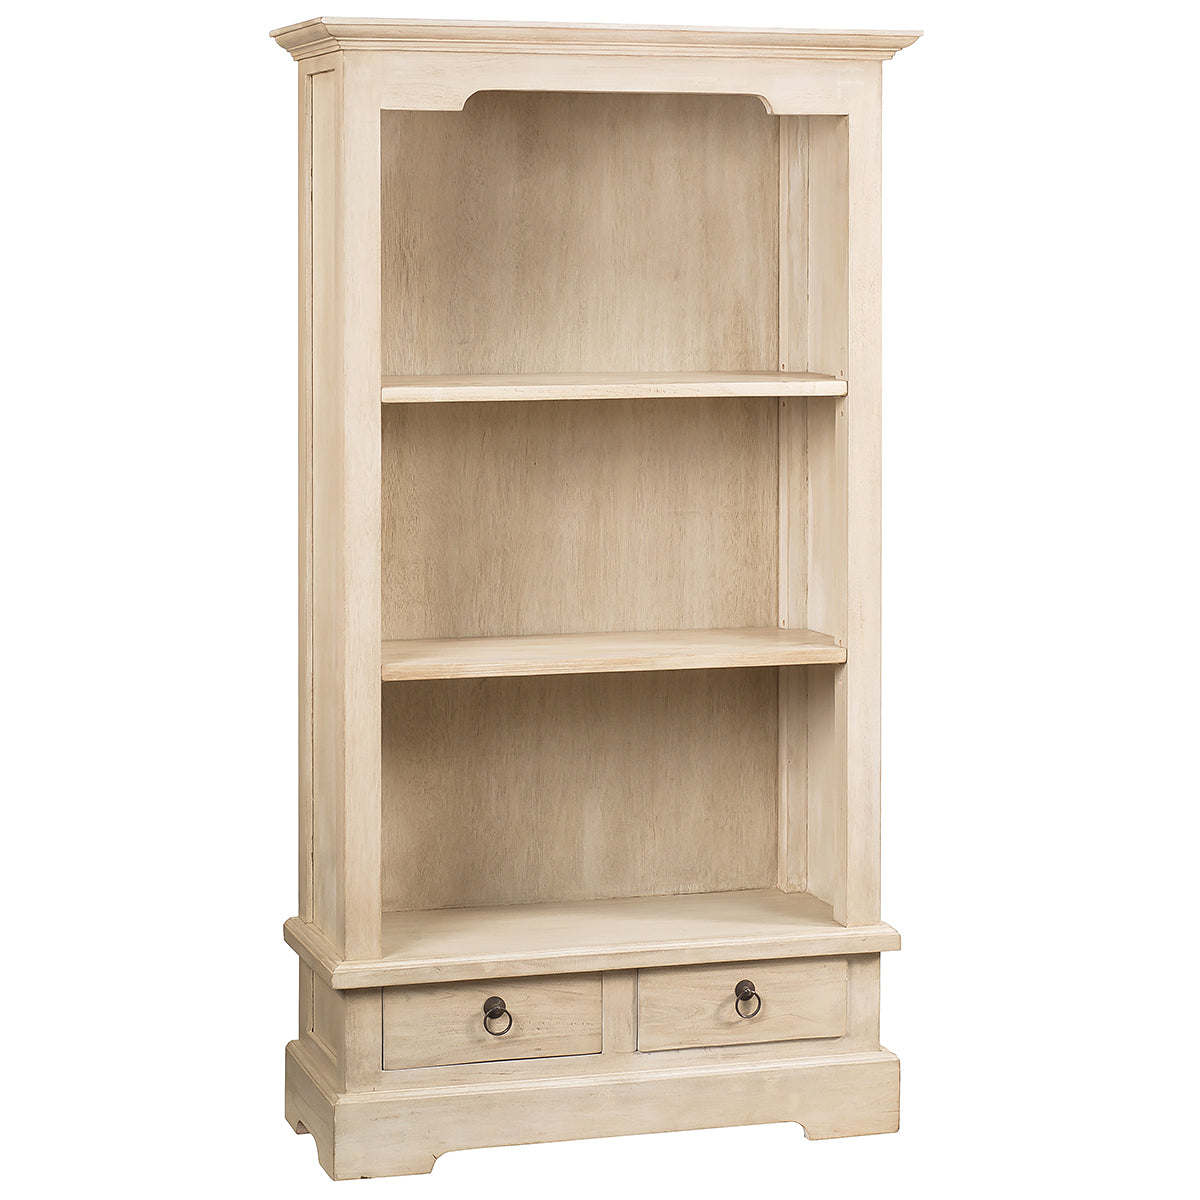 whitewashed timber cabinet copy display bookcase whitewash img index shelf country